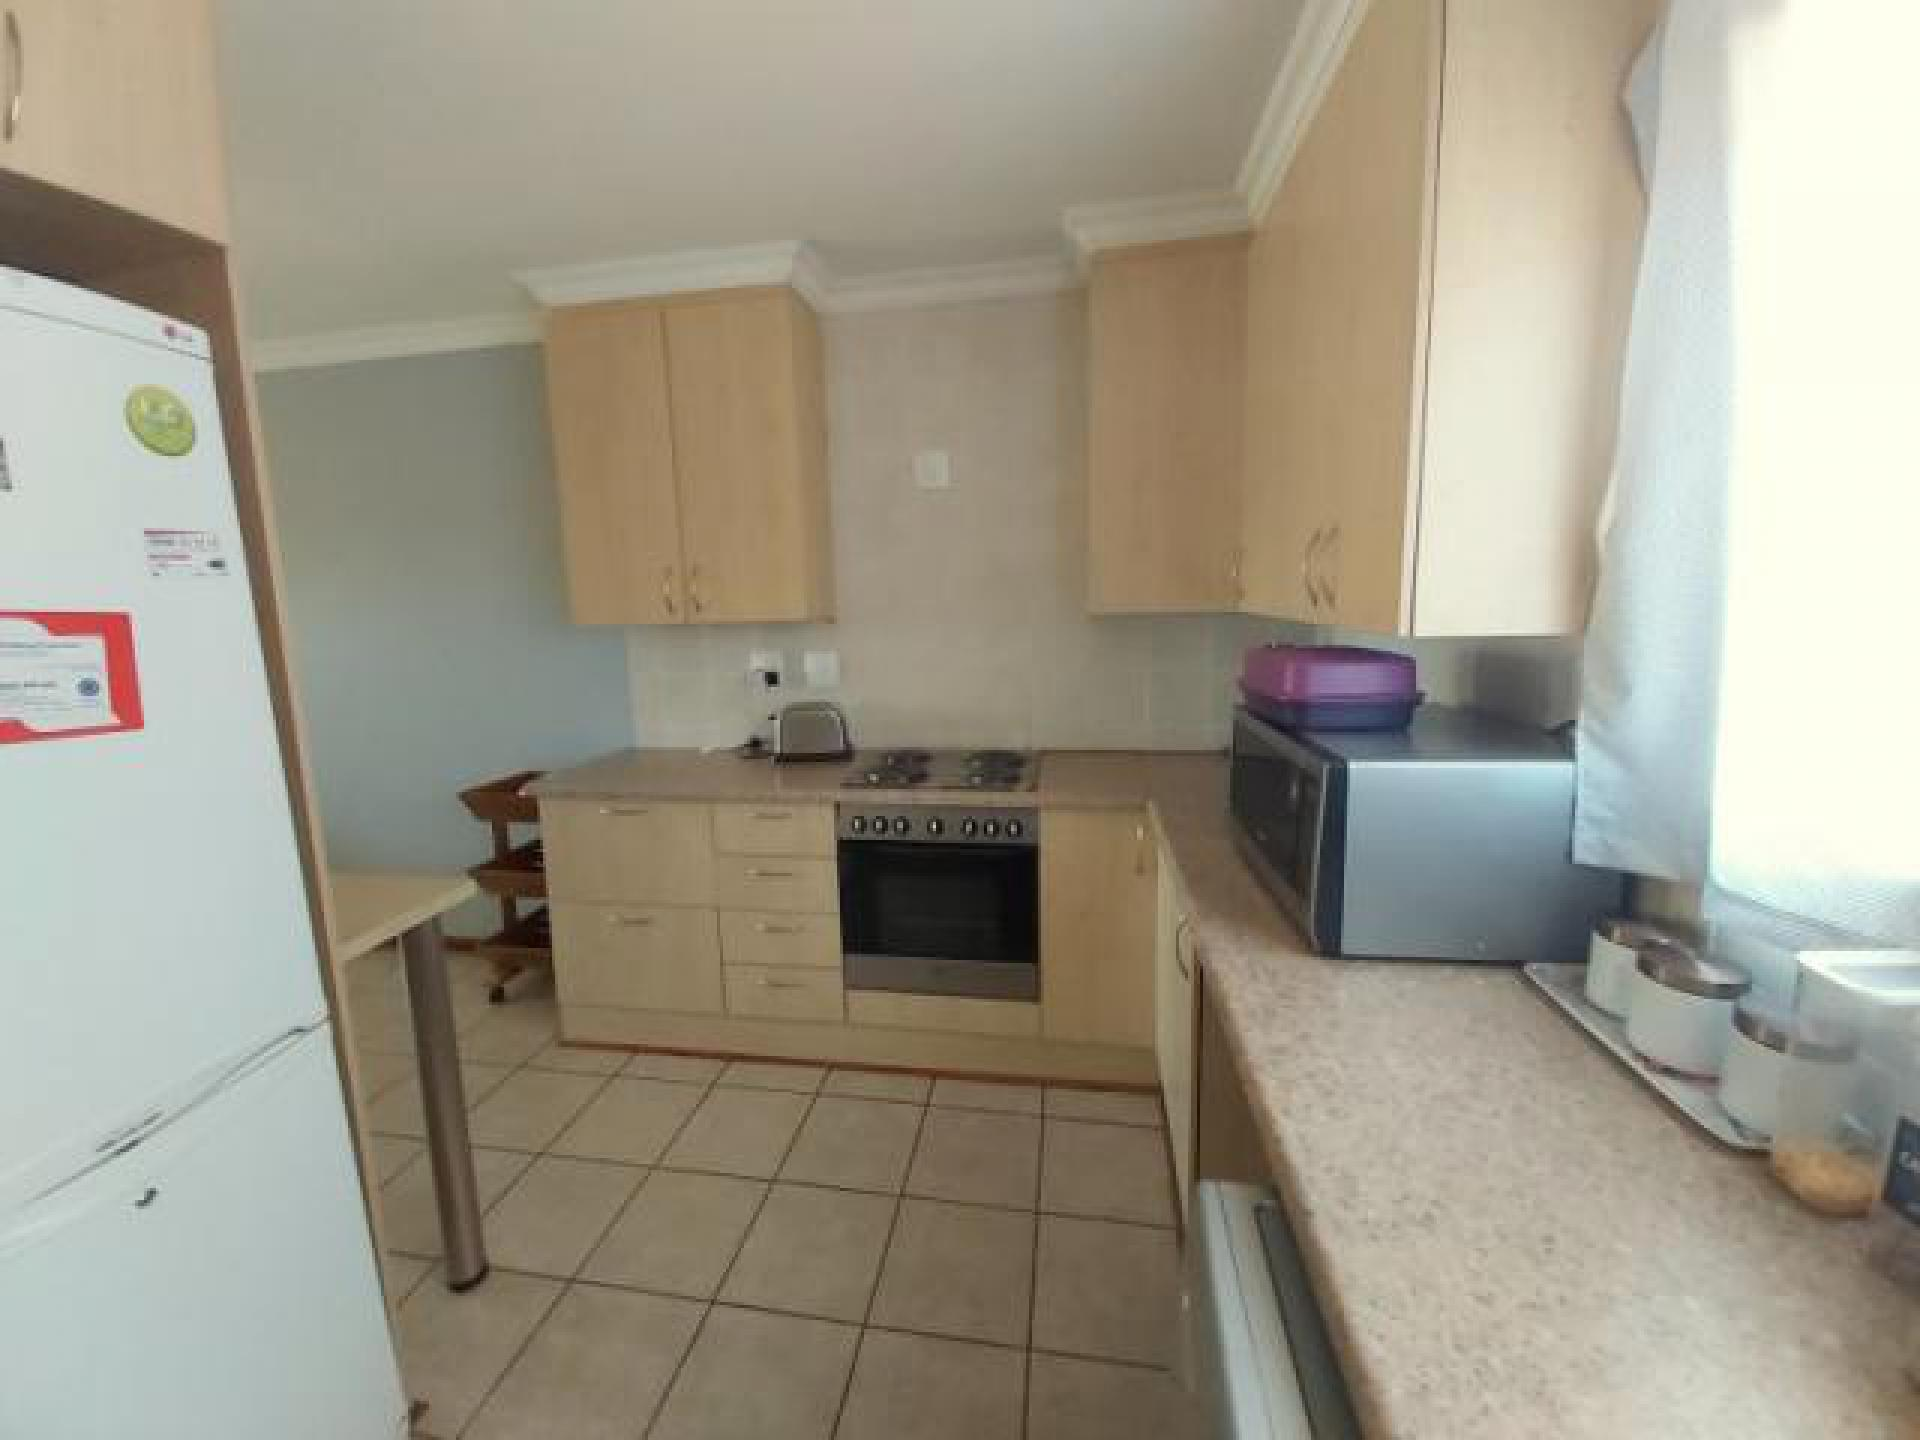 Kitchen of property in Shellyvale